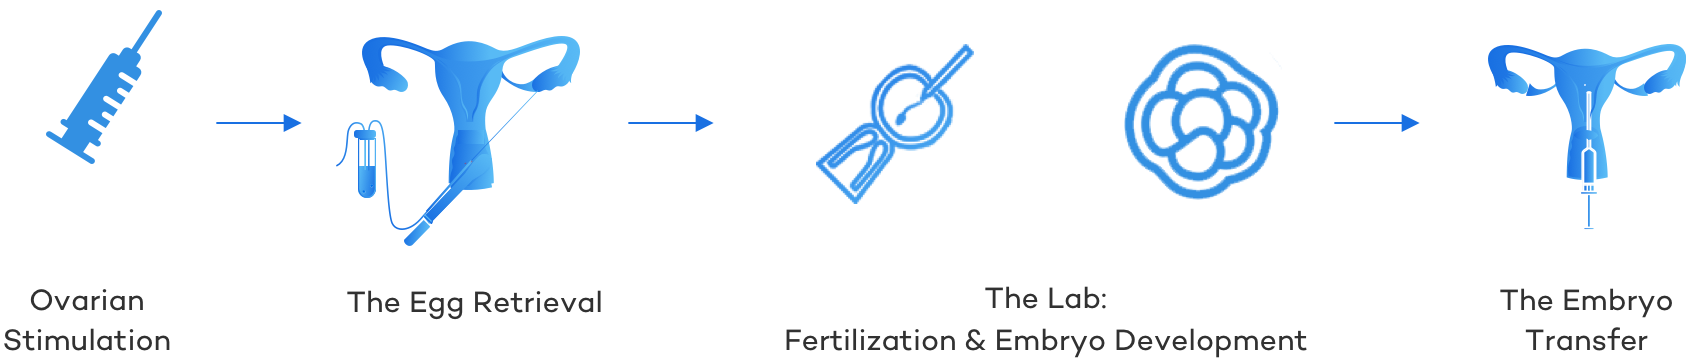 IVF Process Overview